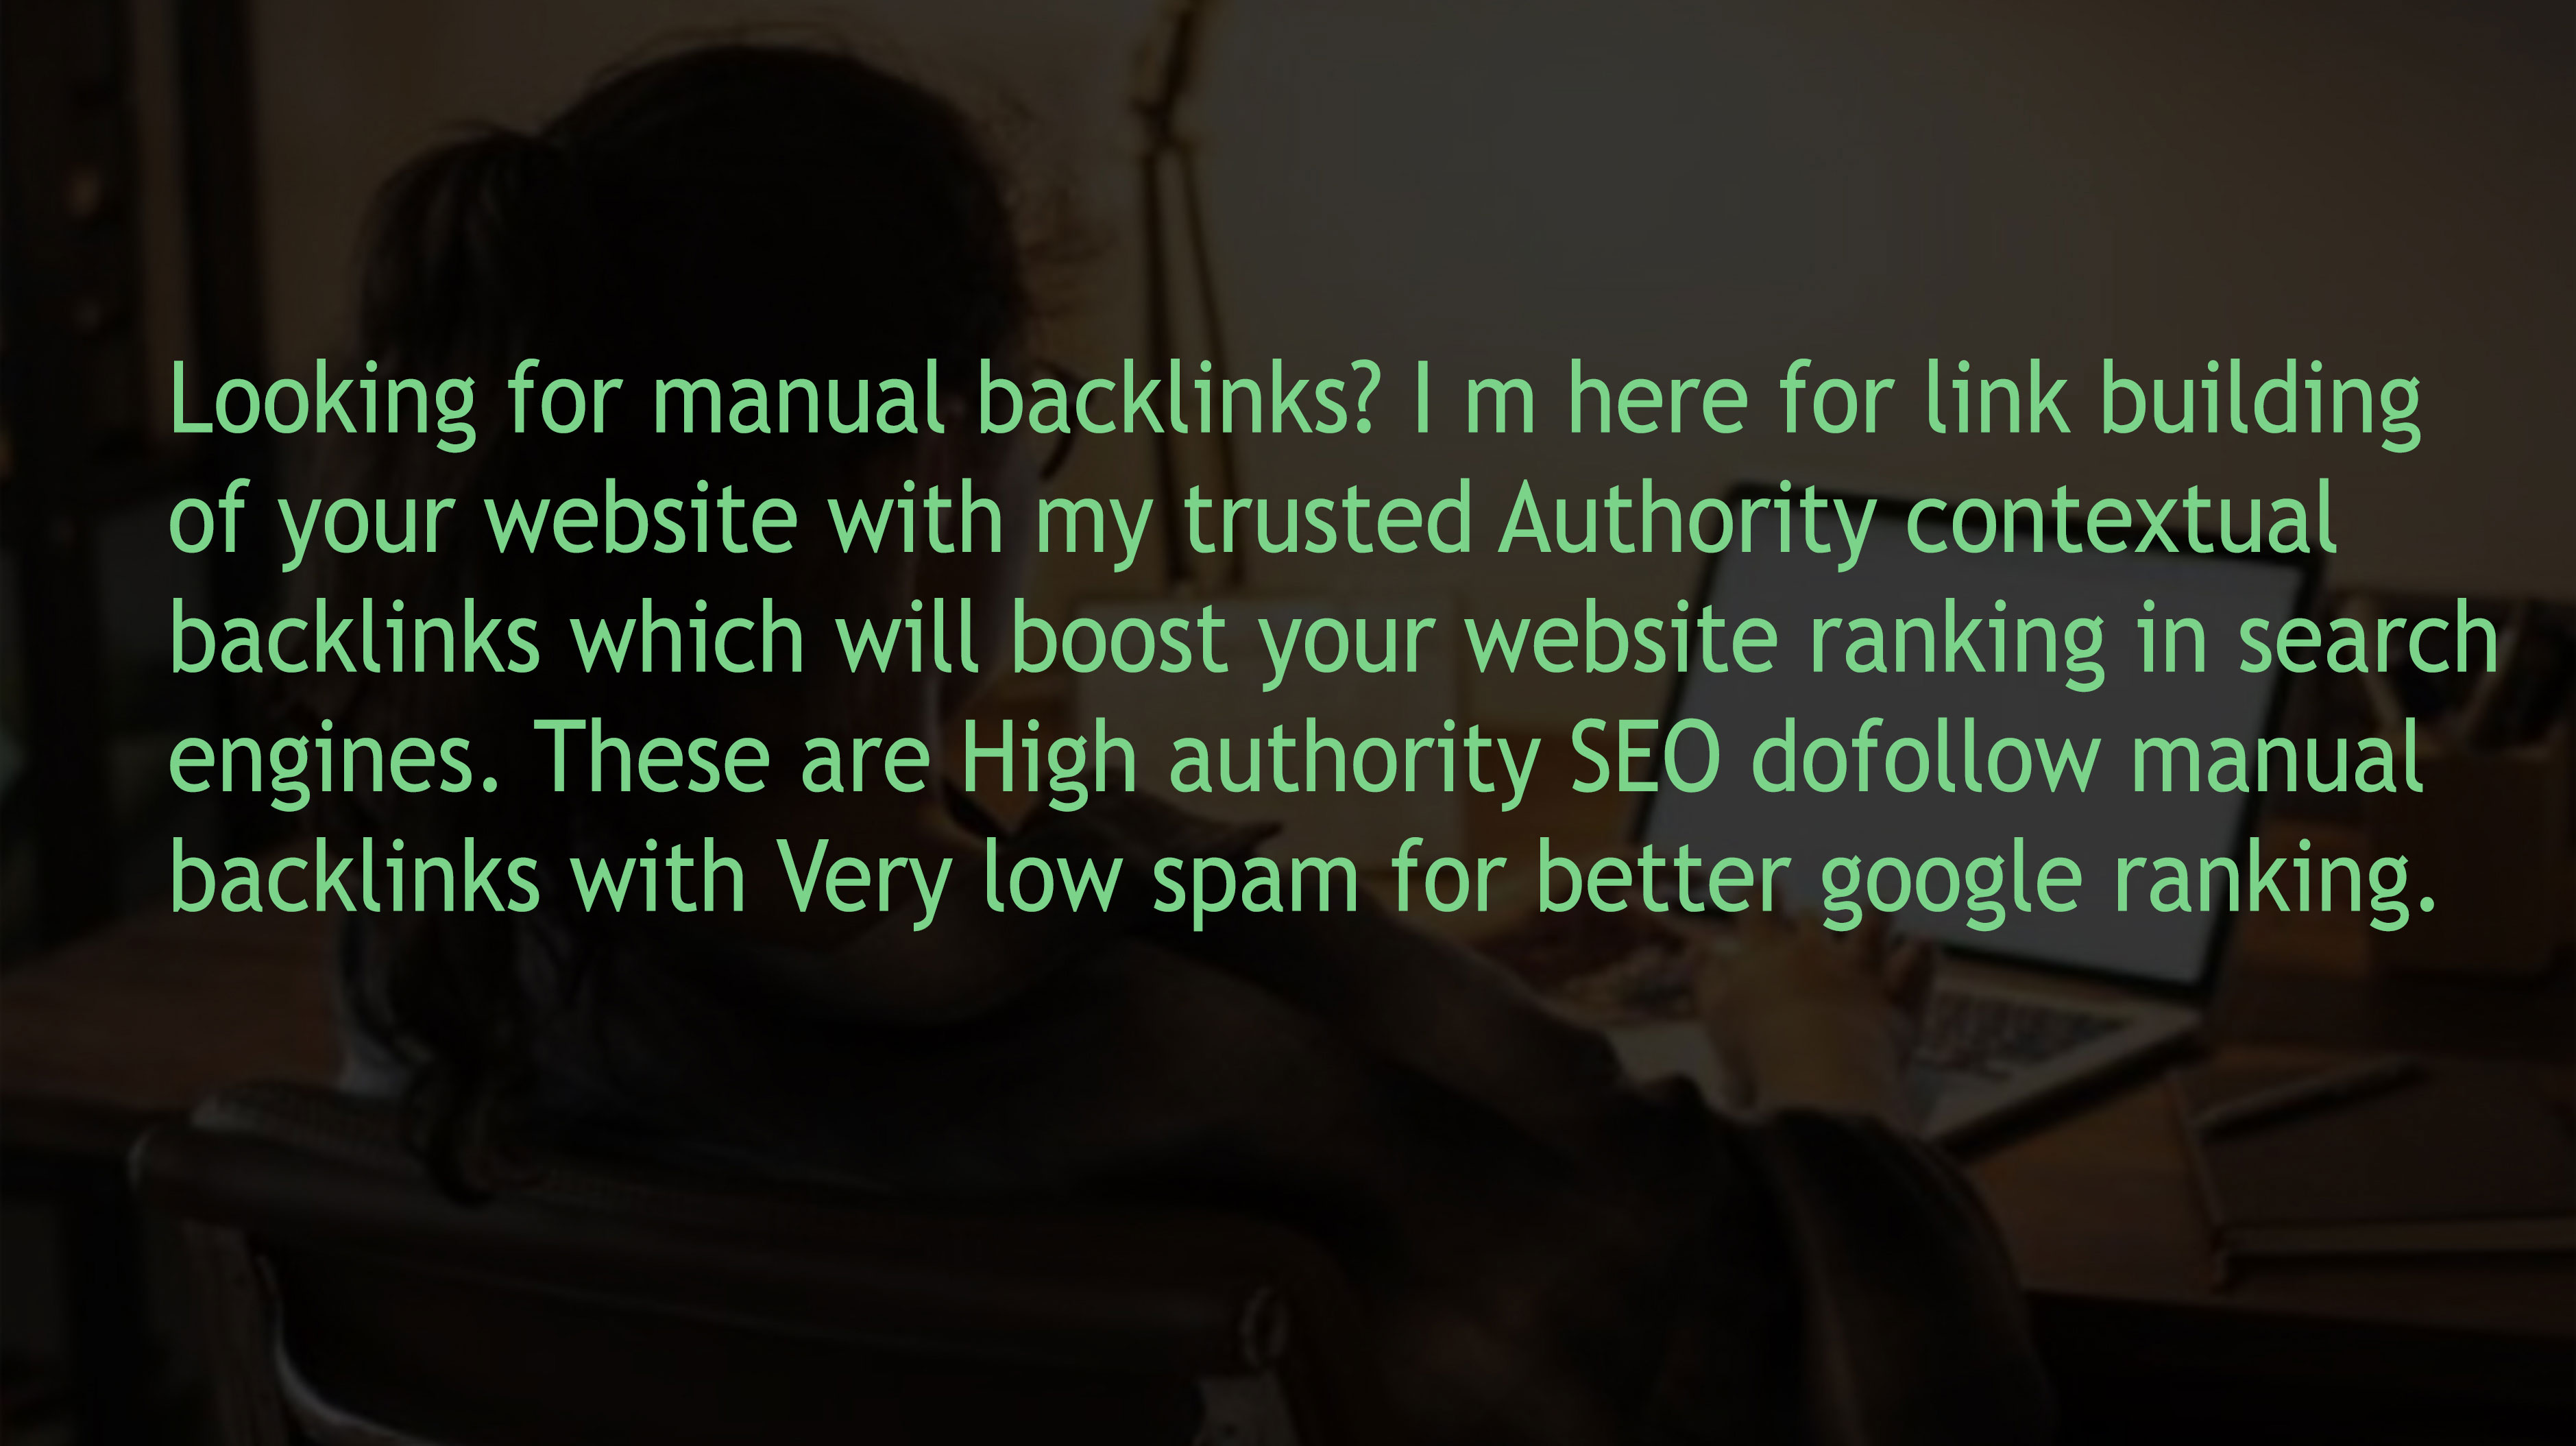 RANK YOUR WEBSITE With Premium 2000 Web2.0 PBN backlink with High DA PA TF CF and Unique Article